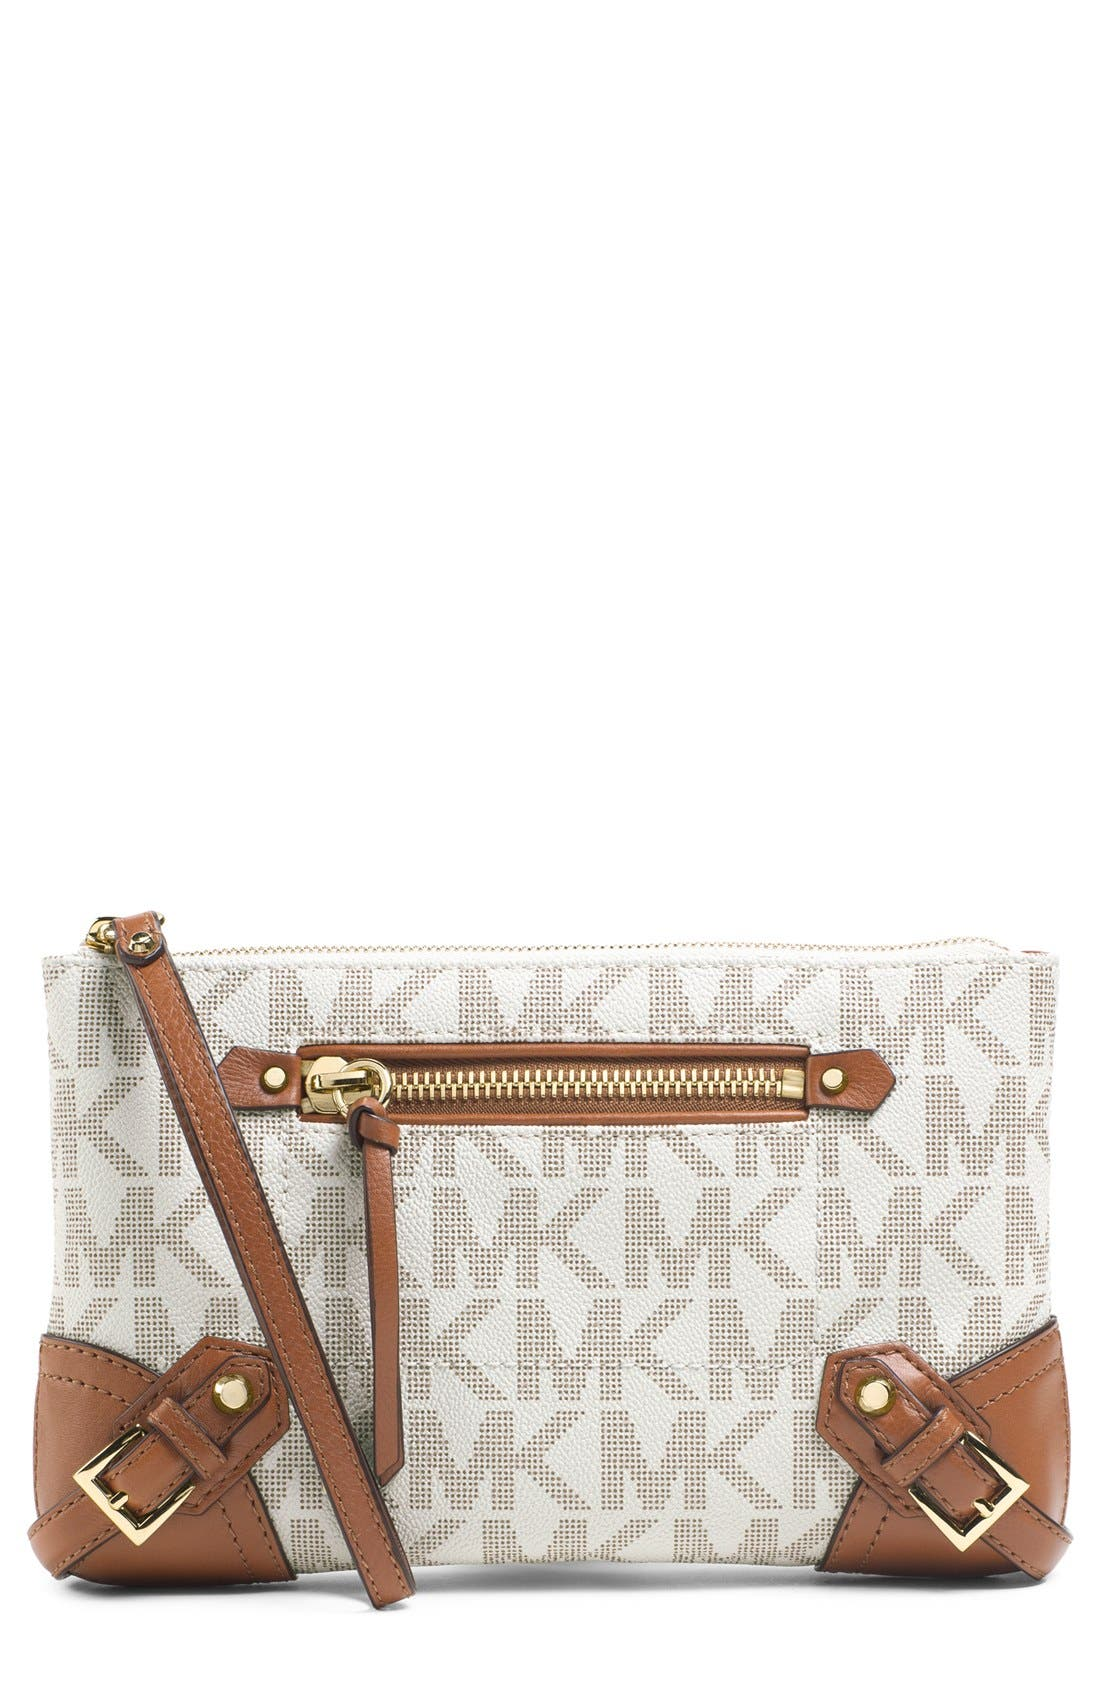 Main Image - MICHAEL Michael Kors 'Large Fallon' Zip Clutch